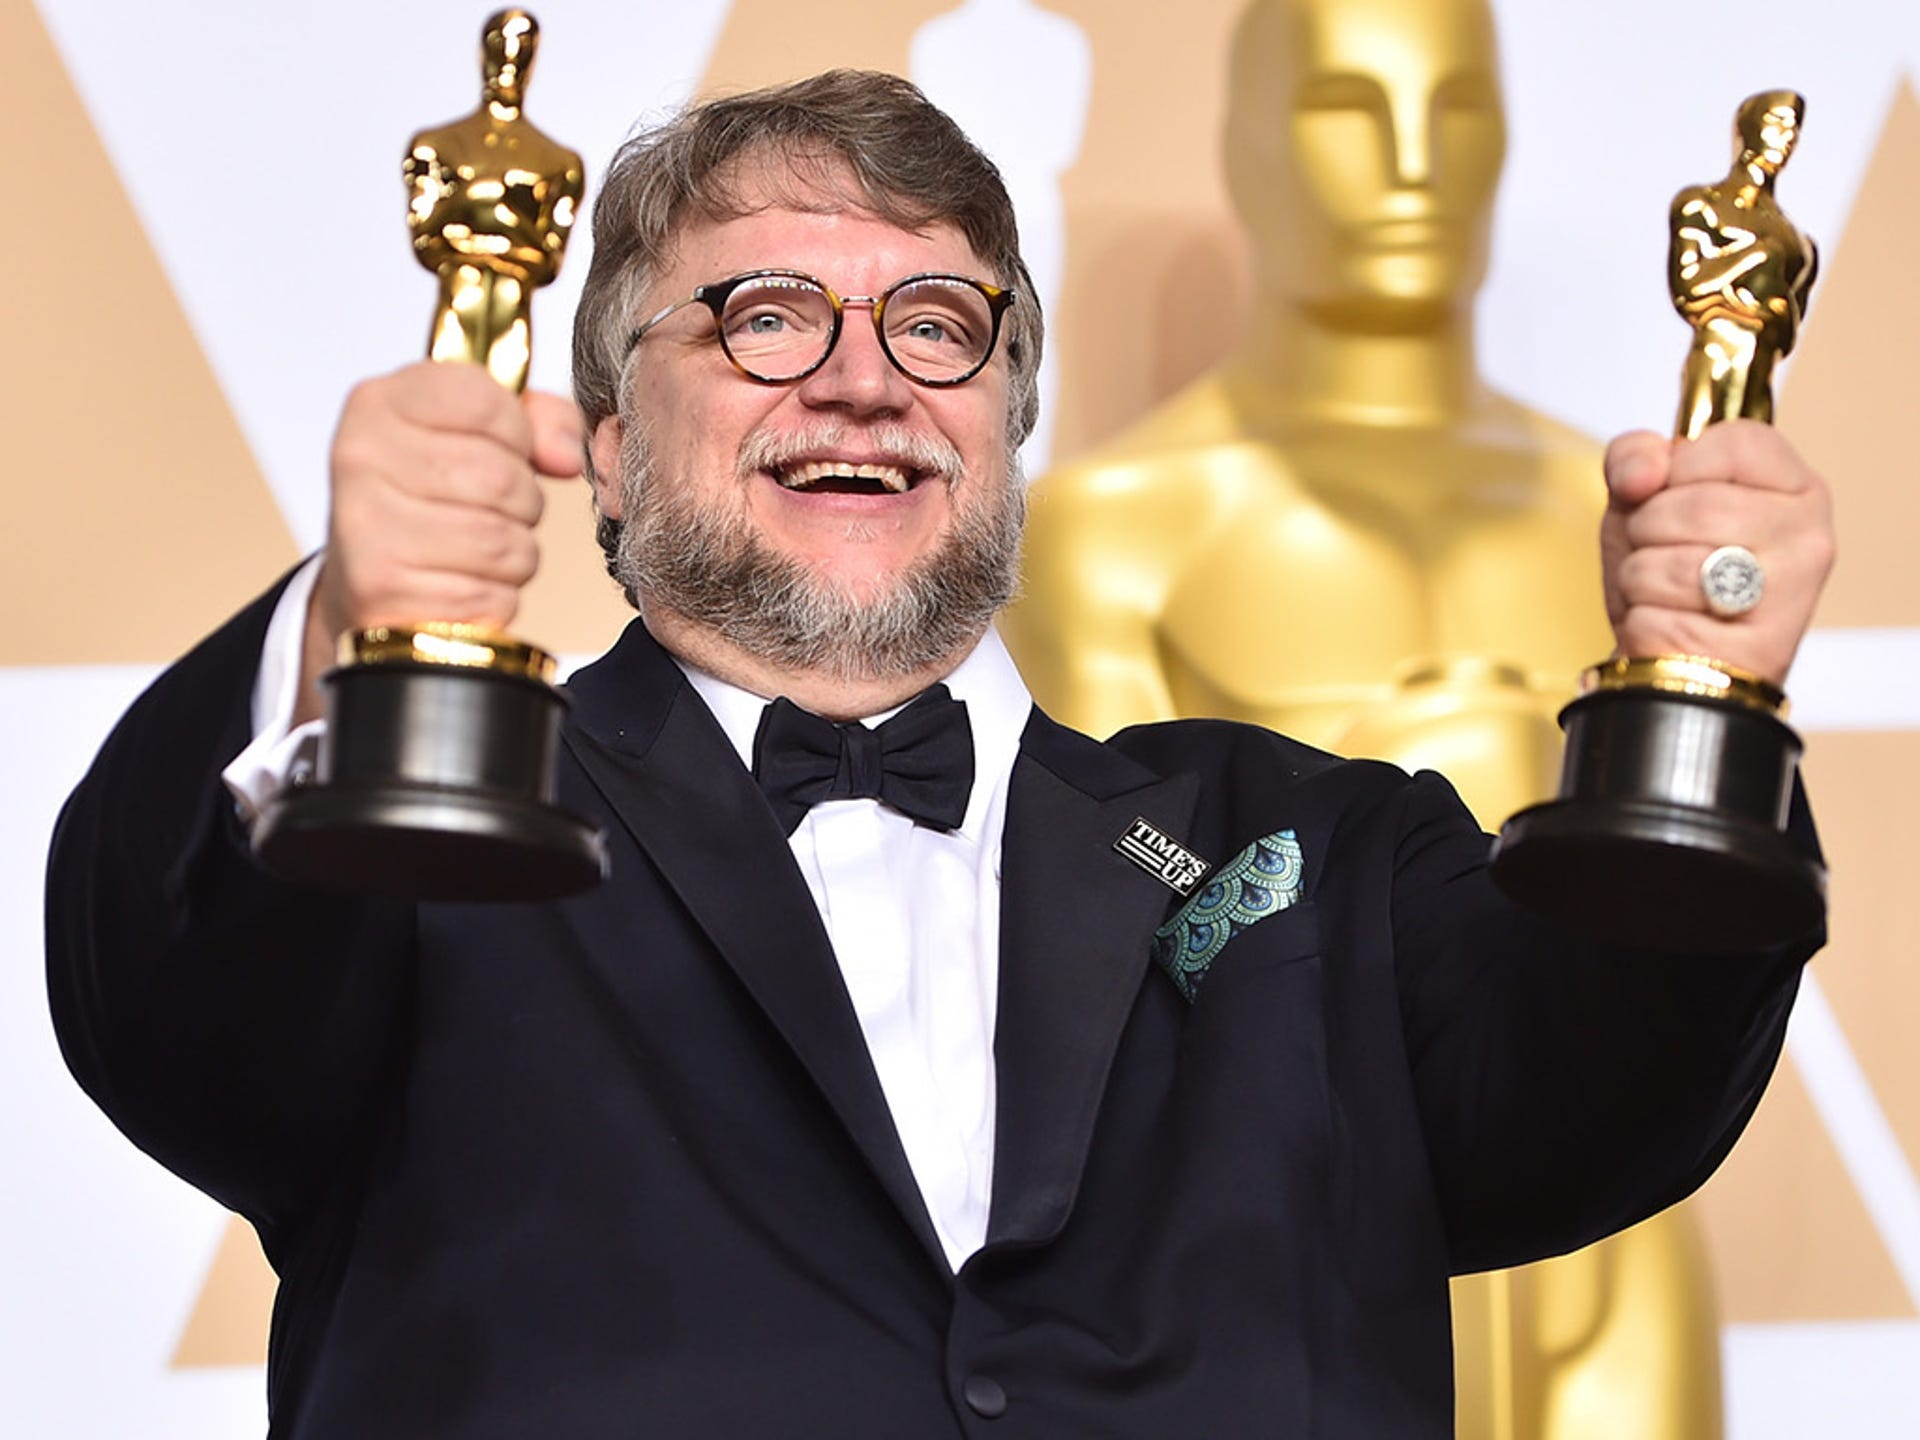 Academy Award winners for best director through the years